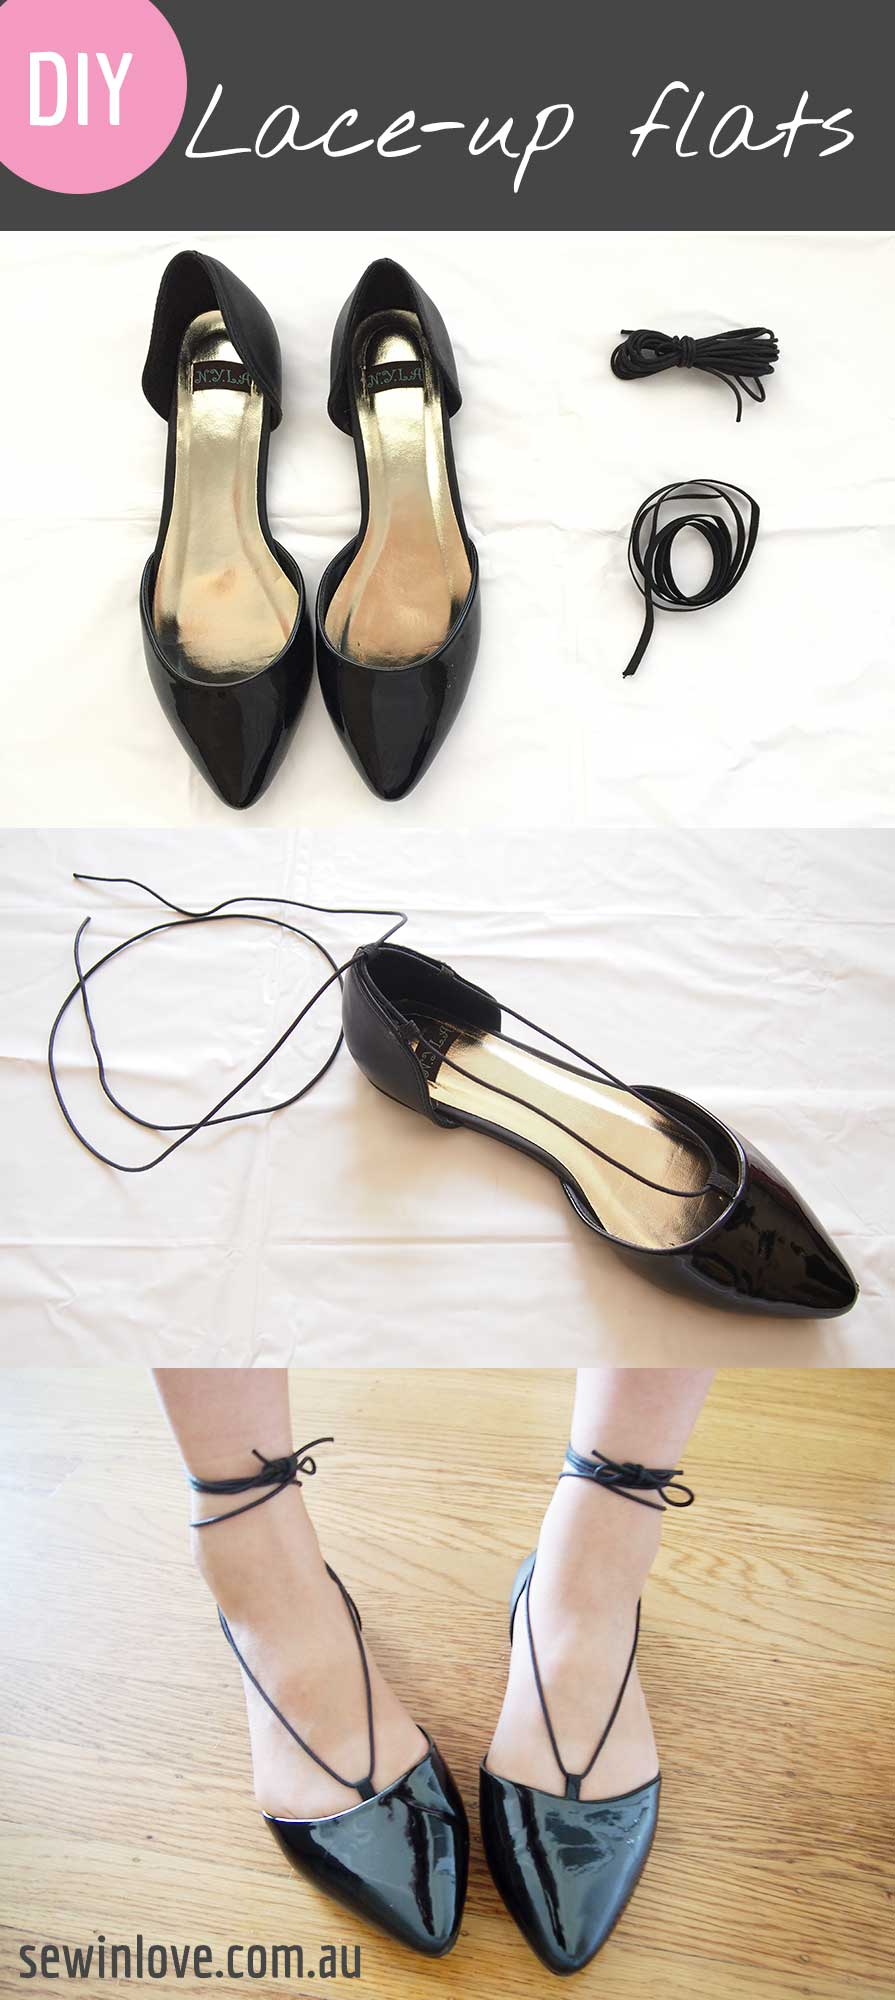 e0ce25885e8a DIY Lace-up Flats - I made me own version of the popular Aquazzura lace